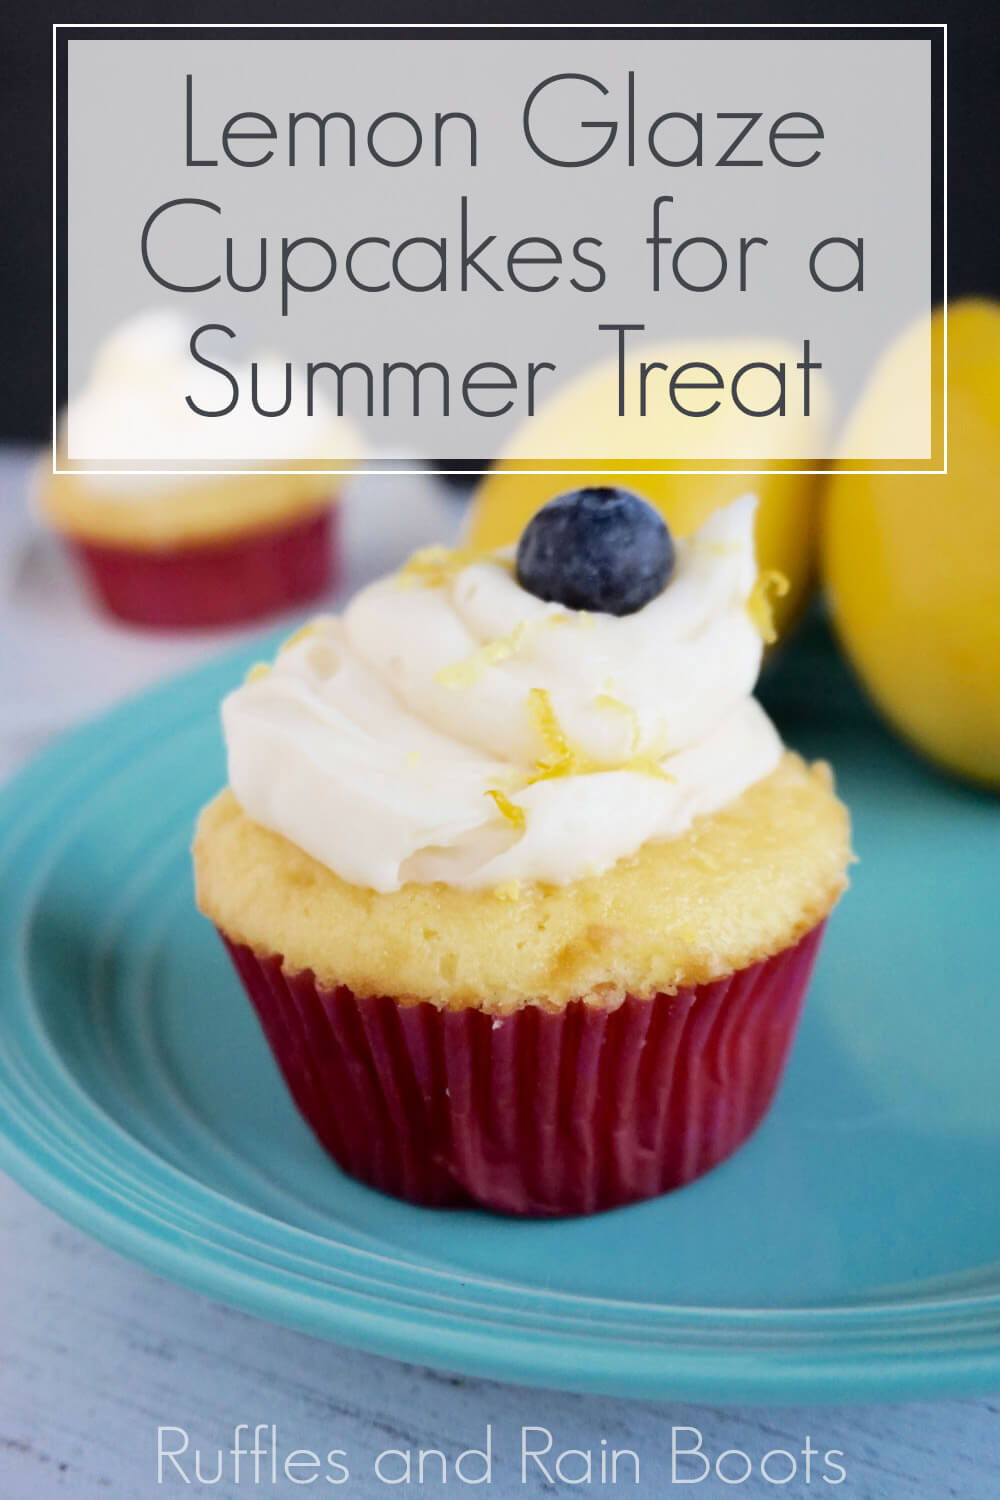 Easy Lemon Cupcake Recipe with text which reads lemon glaze cupcakes for a summer treat